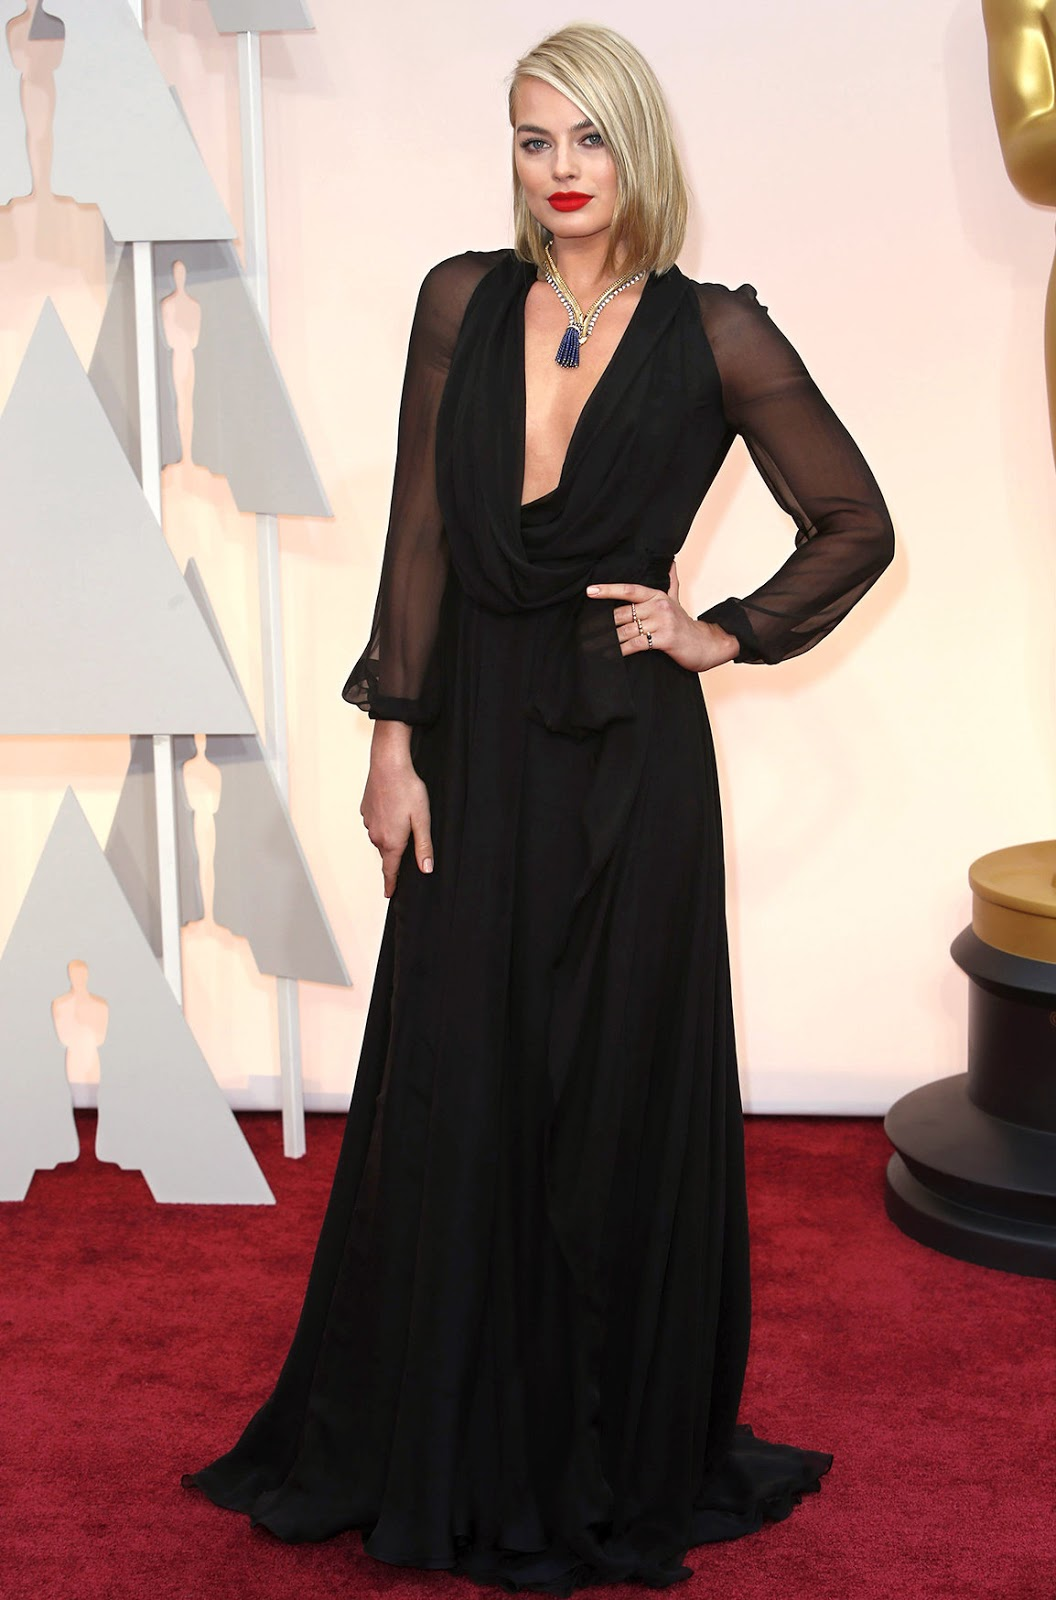 Margot Robbie in Saint Laurent at the Oscars 2015